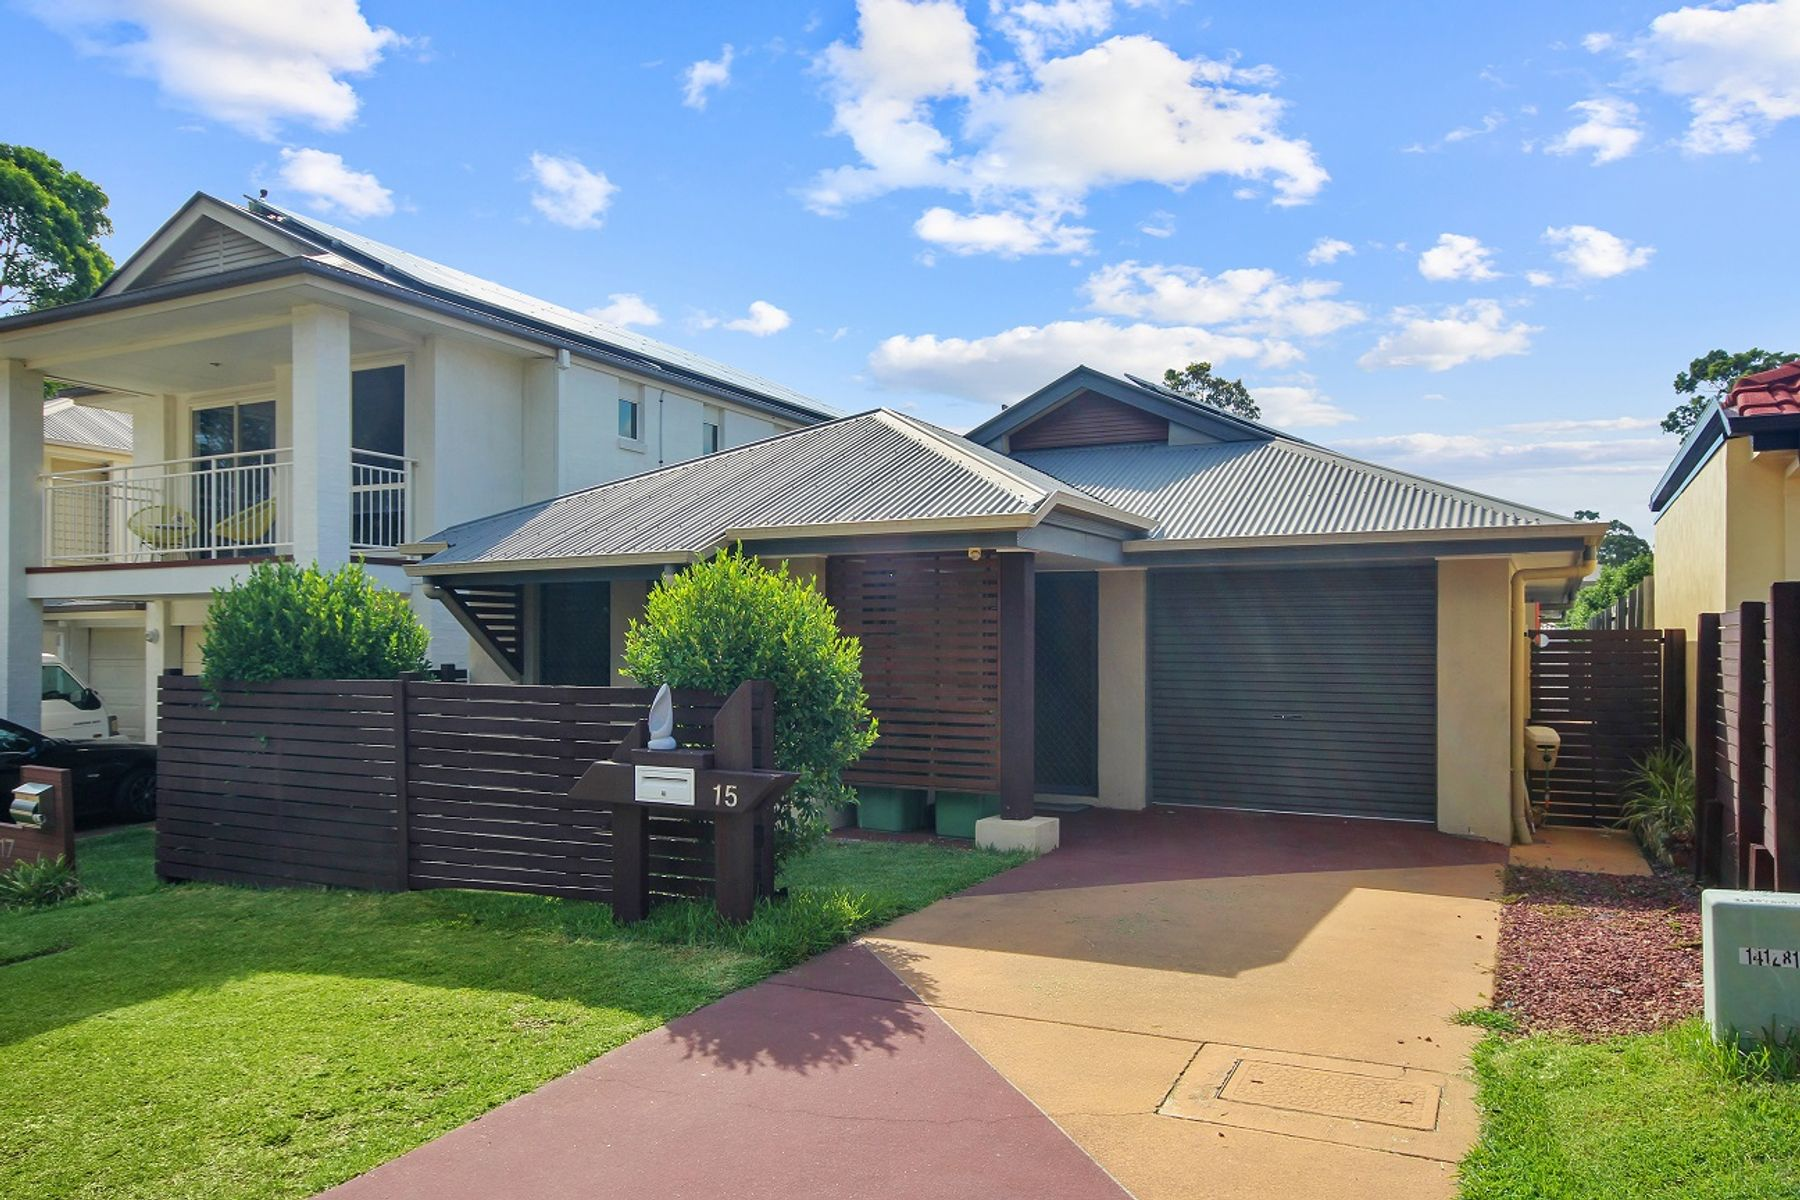 15 Chance Court, Springfield Lakes, QLD 4300